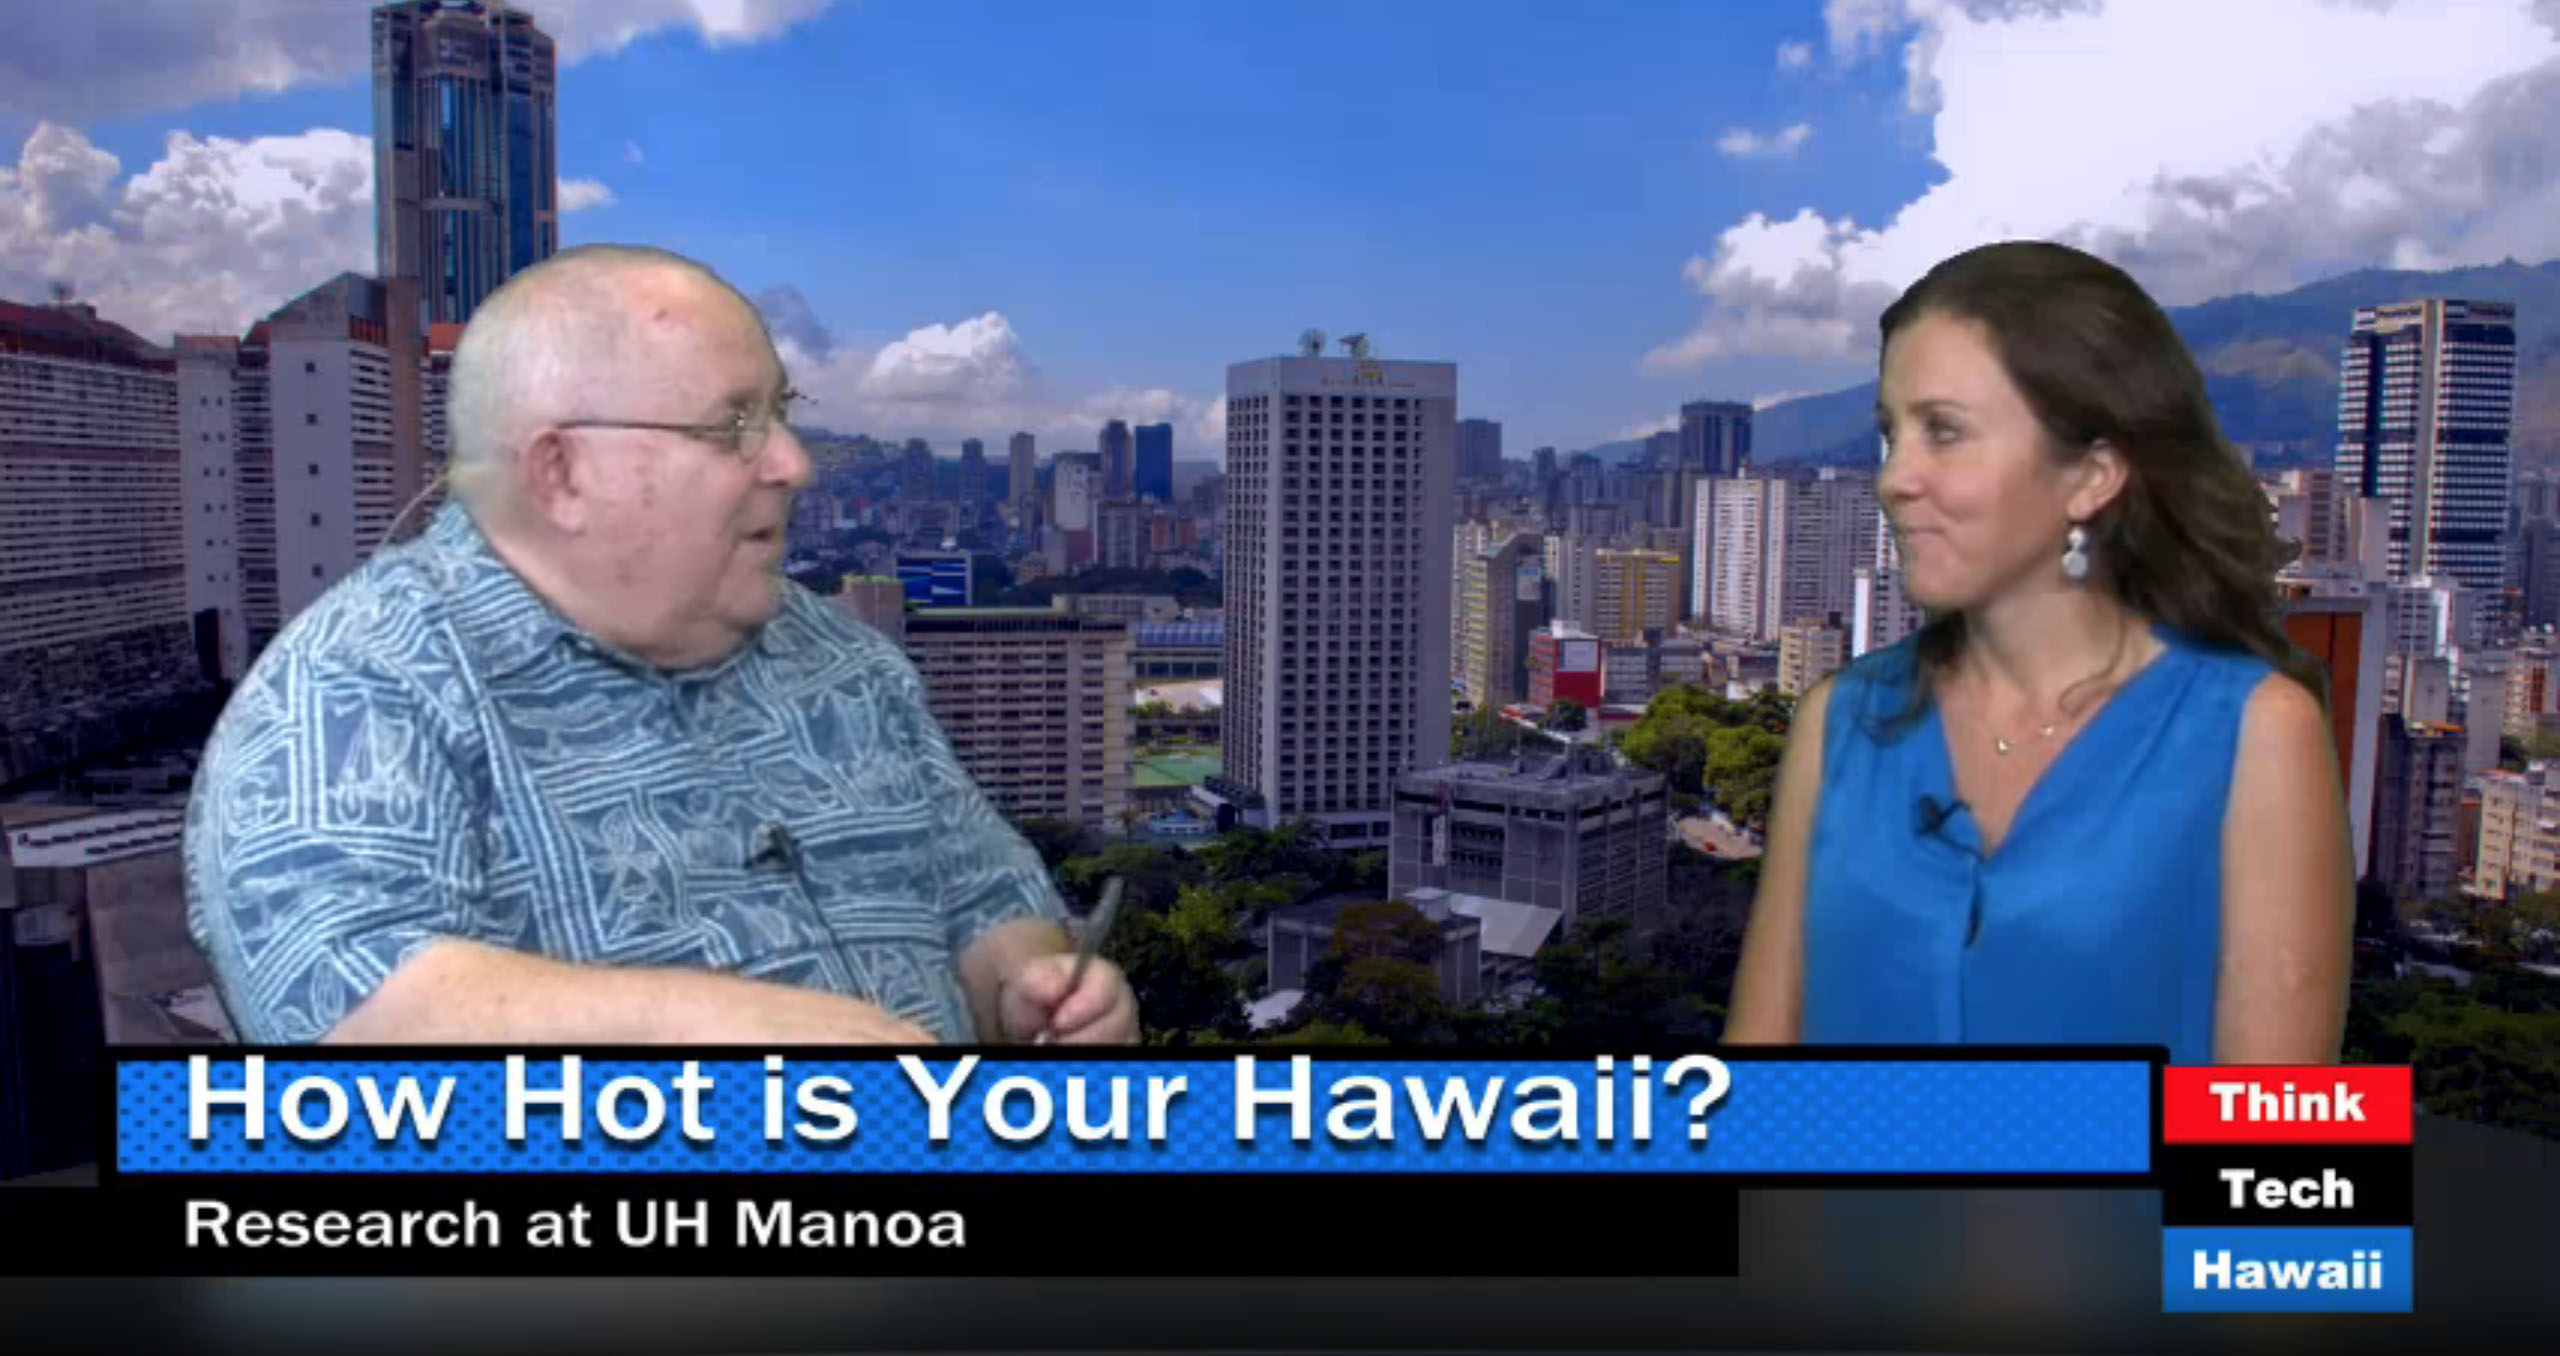 ThinkTech_How Hot is Your Hawaii image